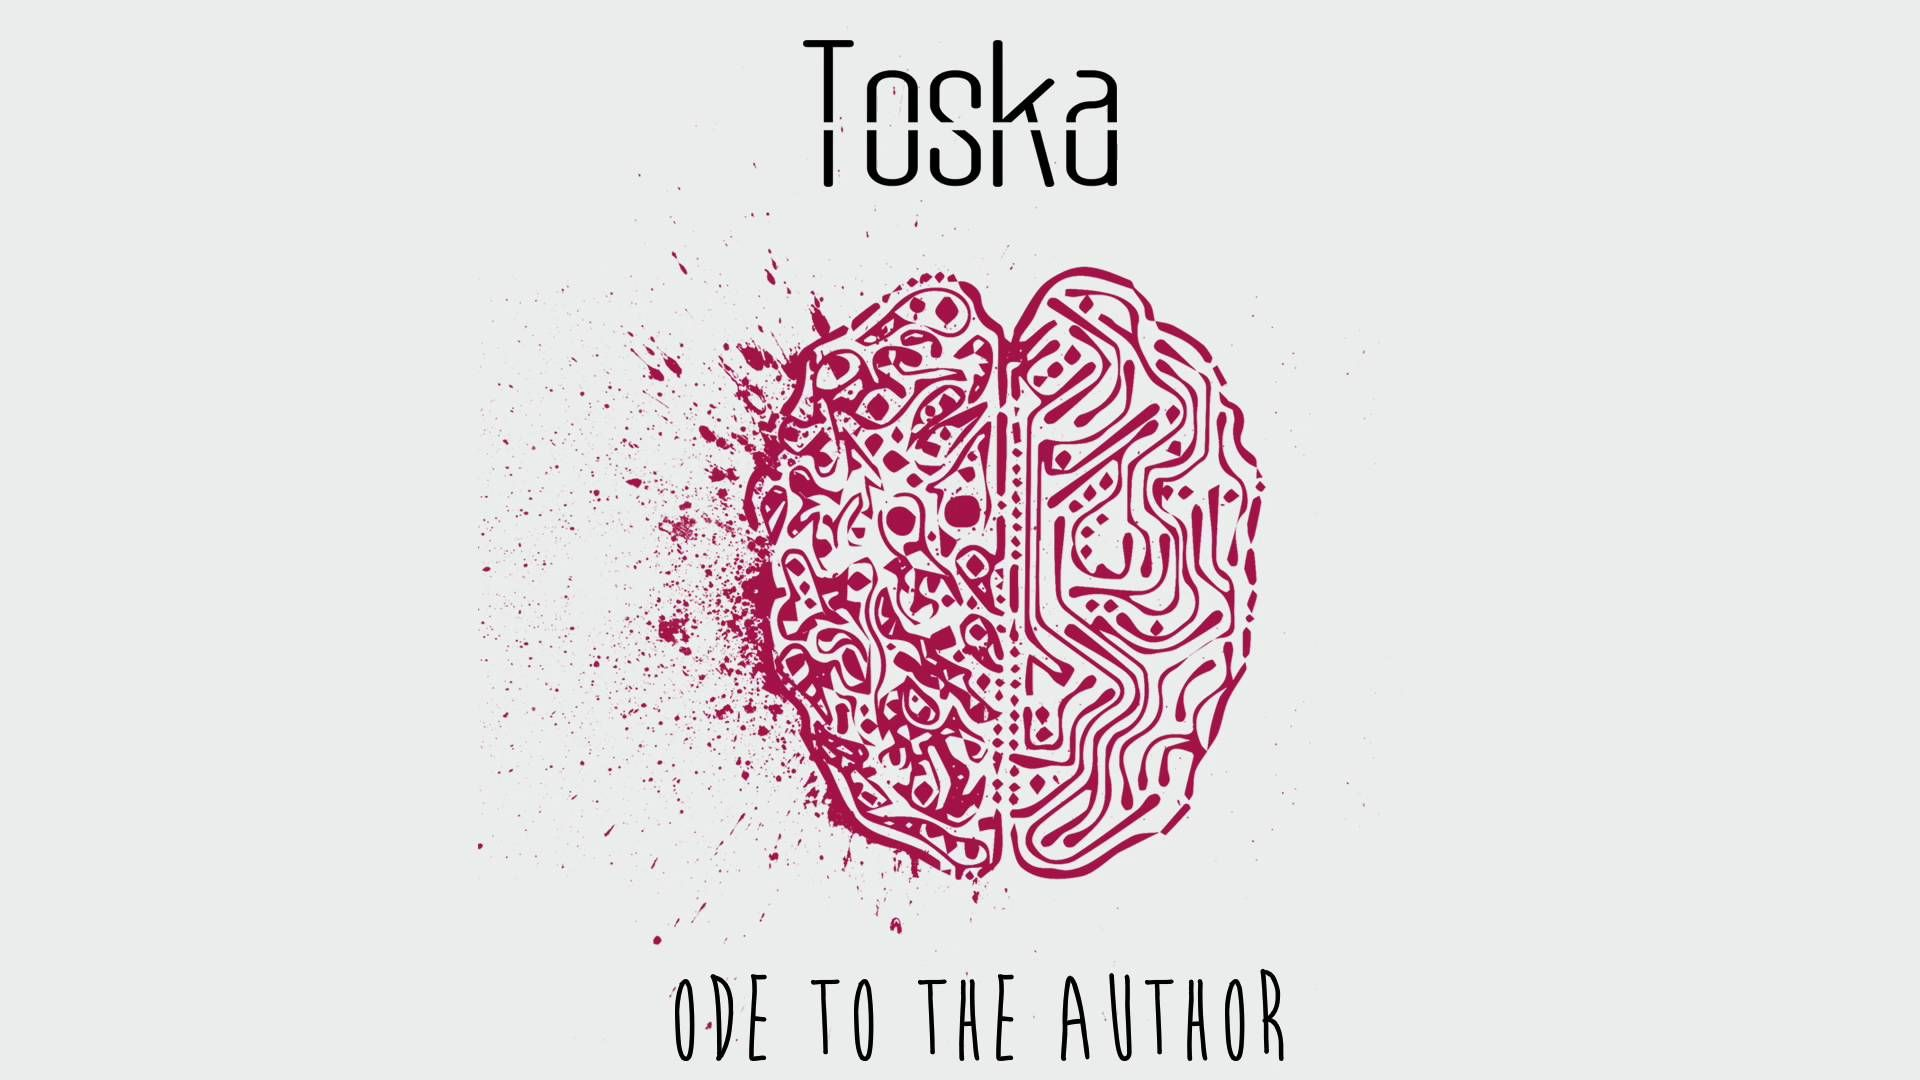 Toska - Ode to the Author [1920x1080] Need #iPhone #6S #Plus #Wallpaper/ #Background for #IPhone6SPlus? Follow iPhone 6S Plus 3Wallpapers/ #Backgrounds Must to Have http://ift.tt/1SfrOMr